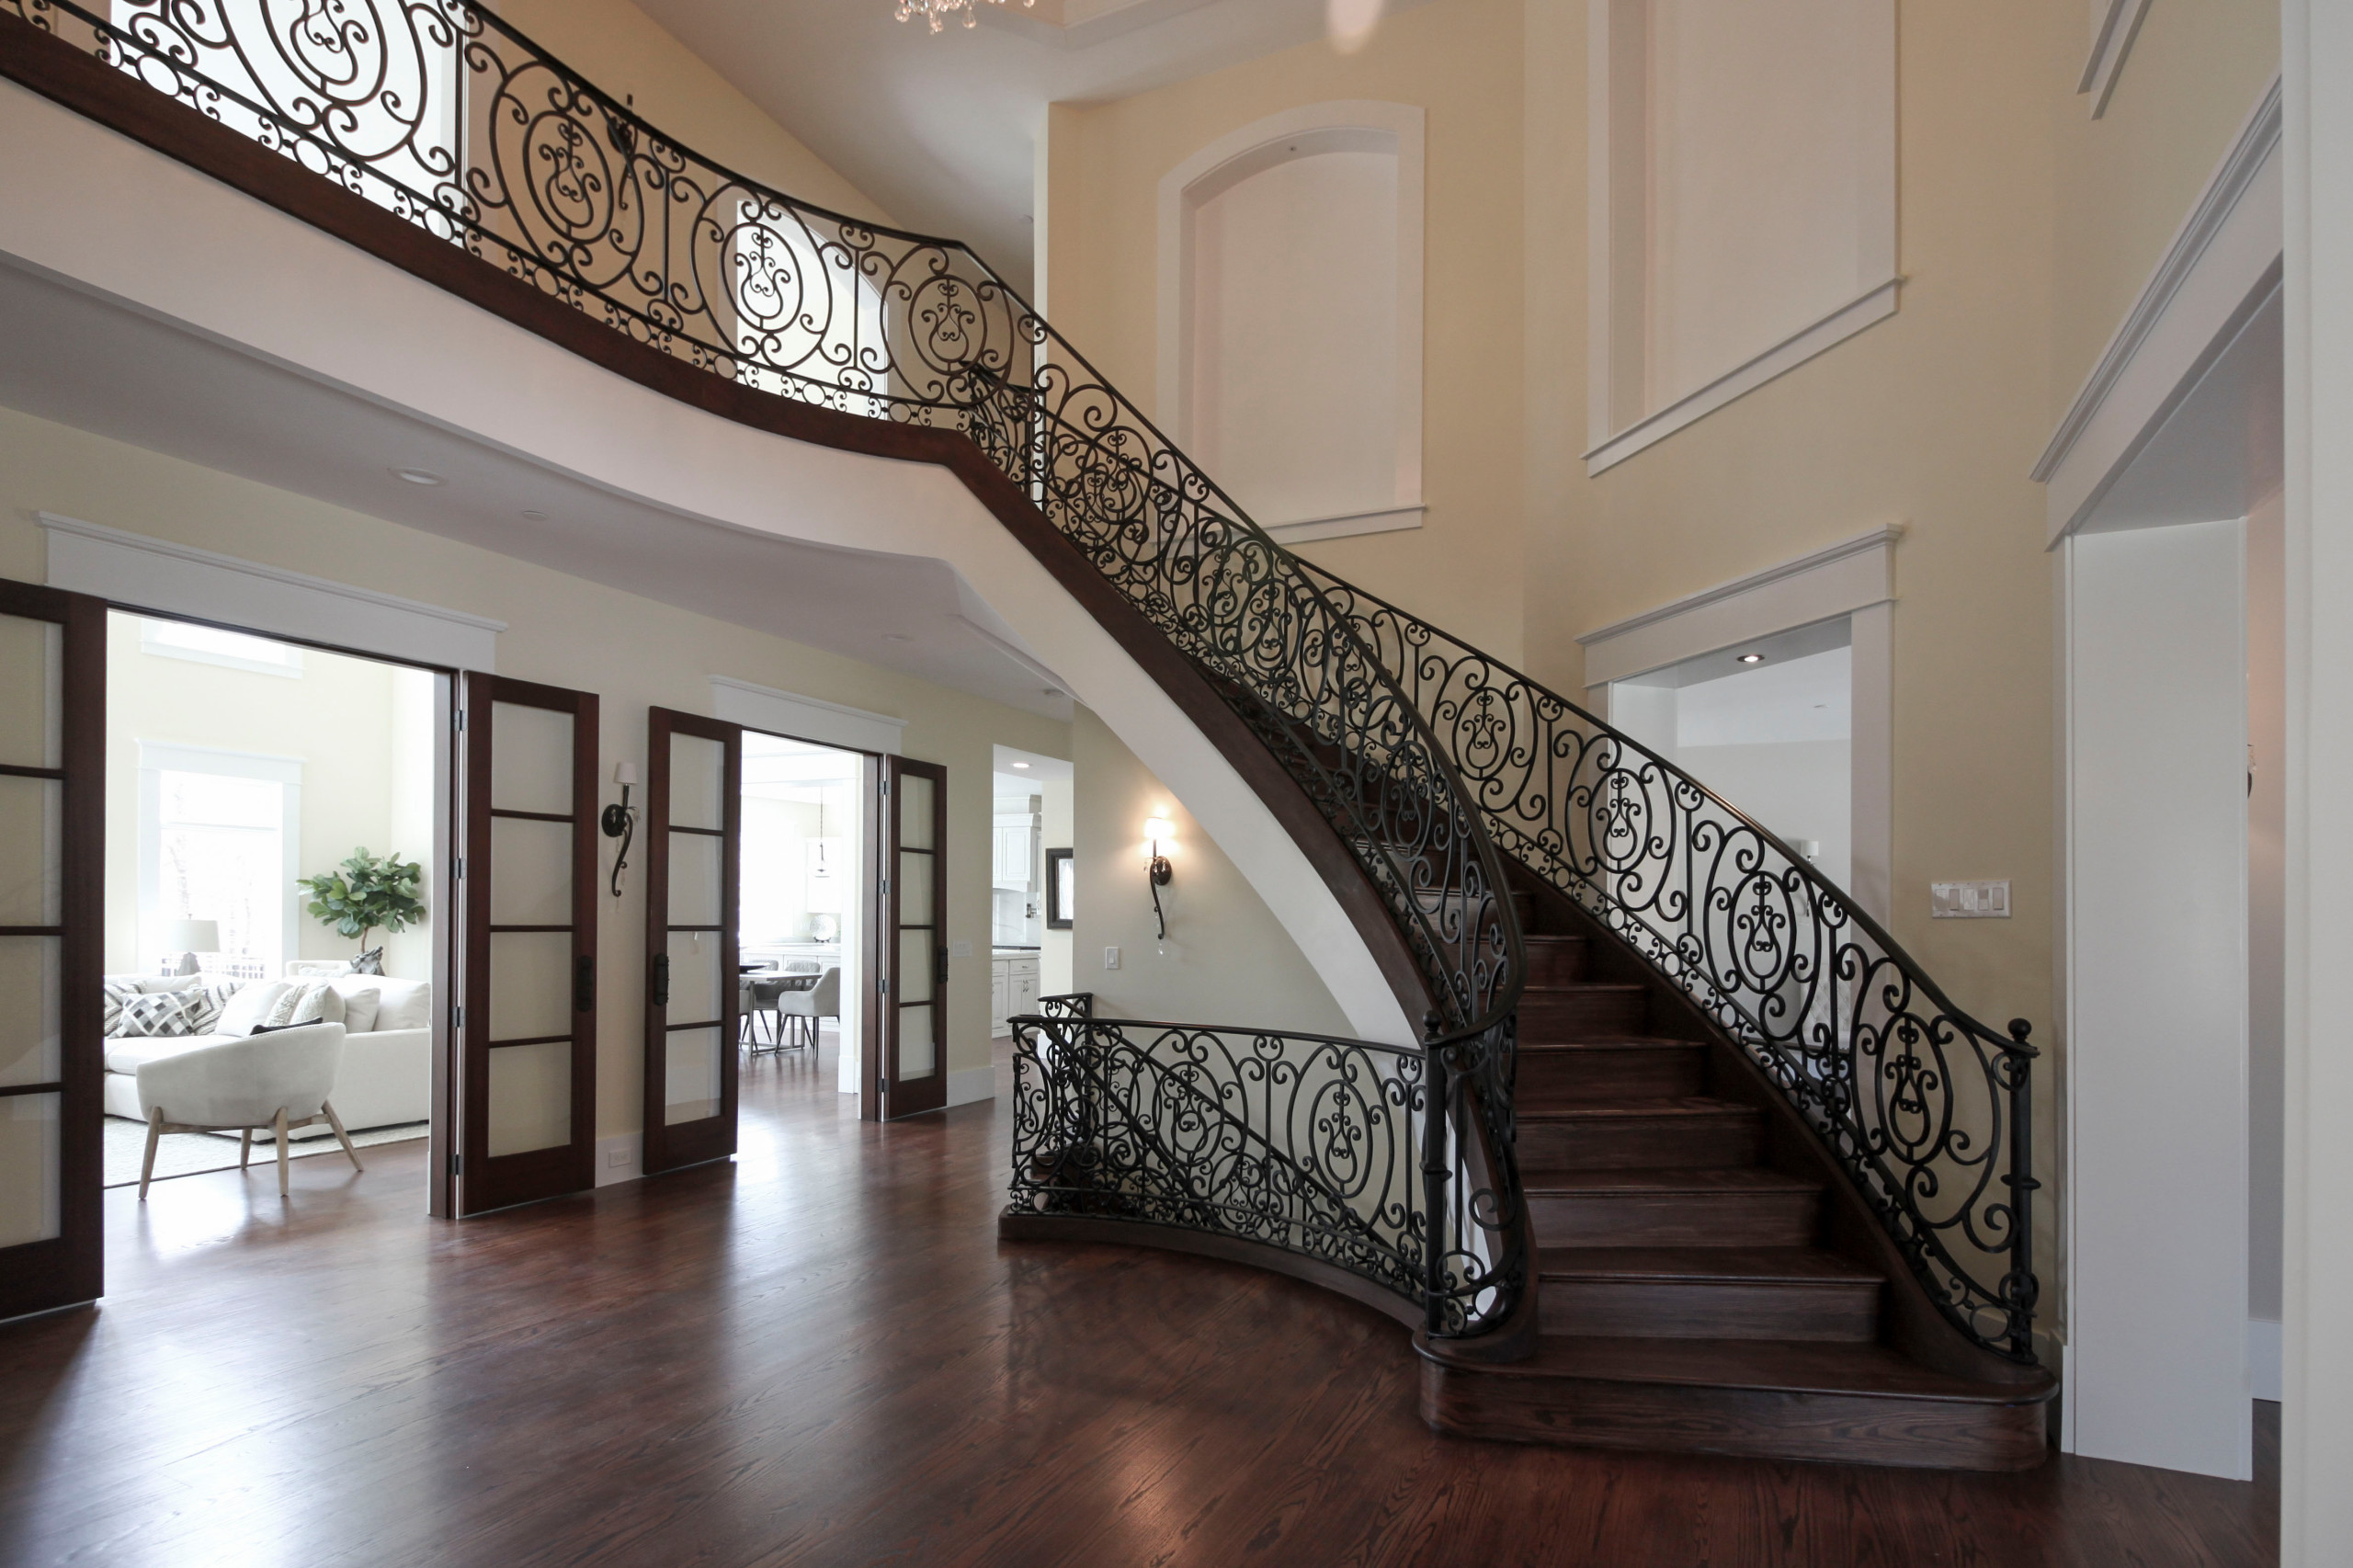 76_Striking Traditional Staircase in French Provincial Home, Potomac MD 20854